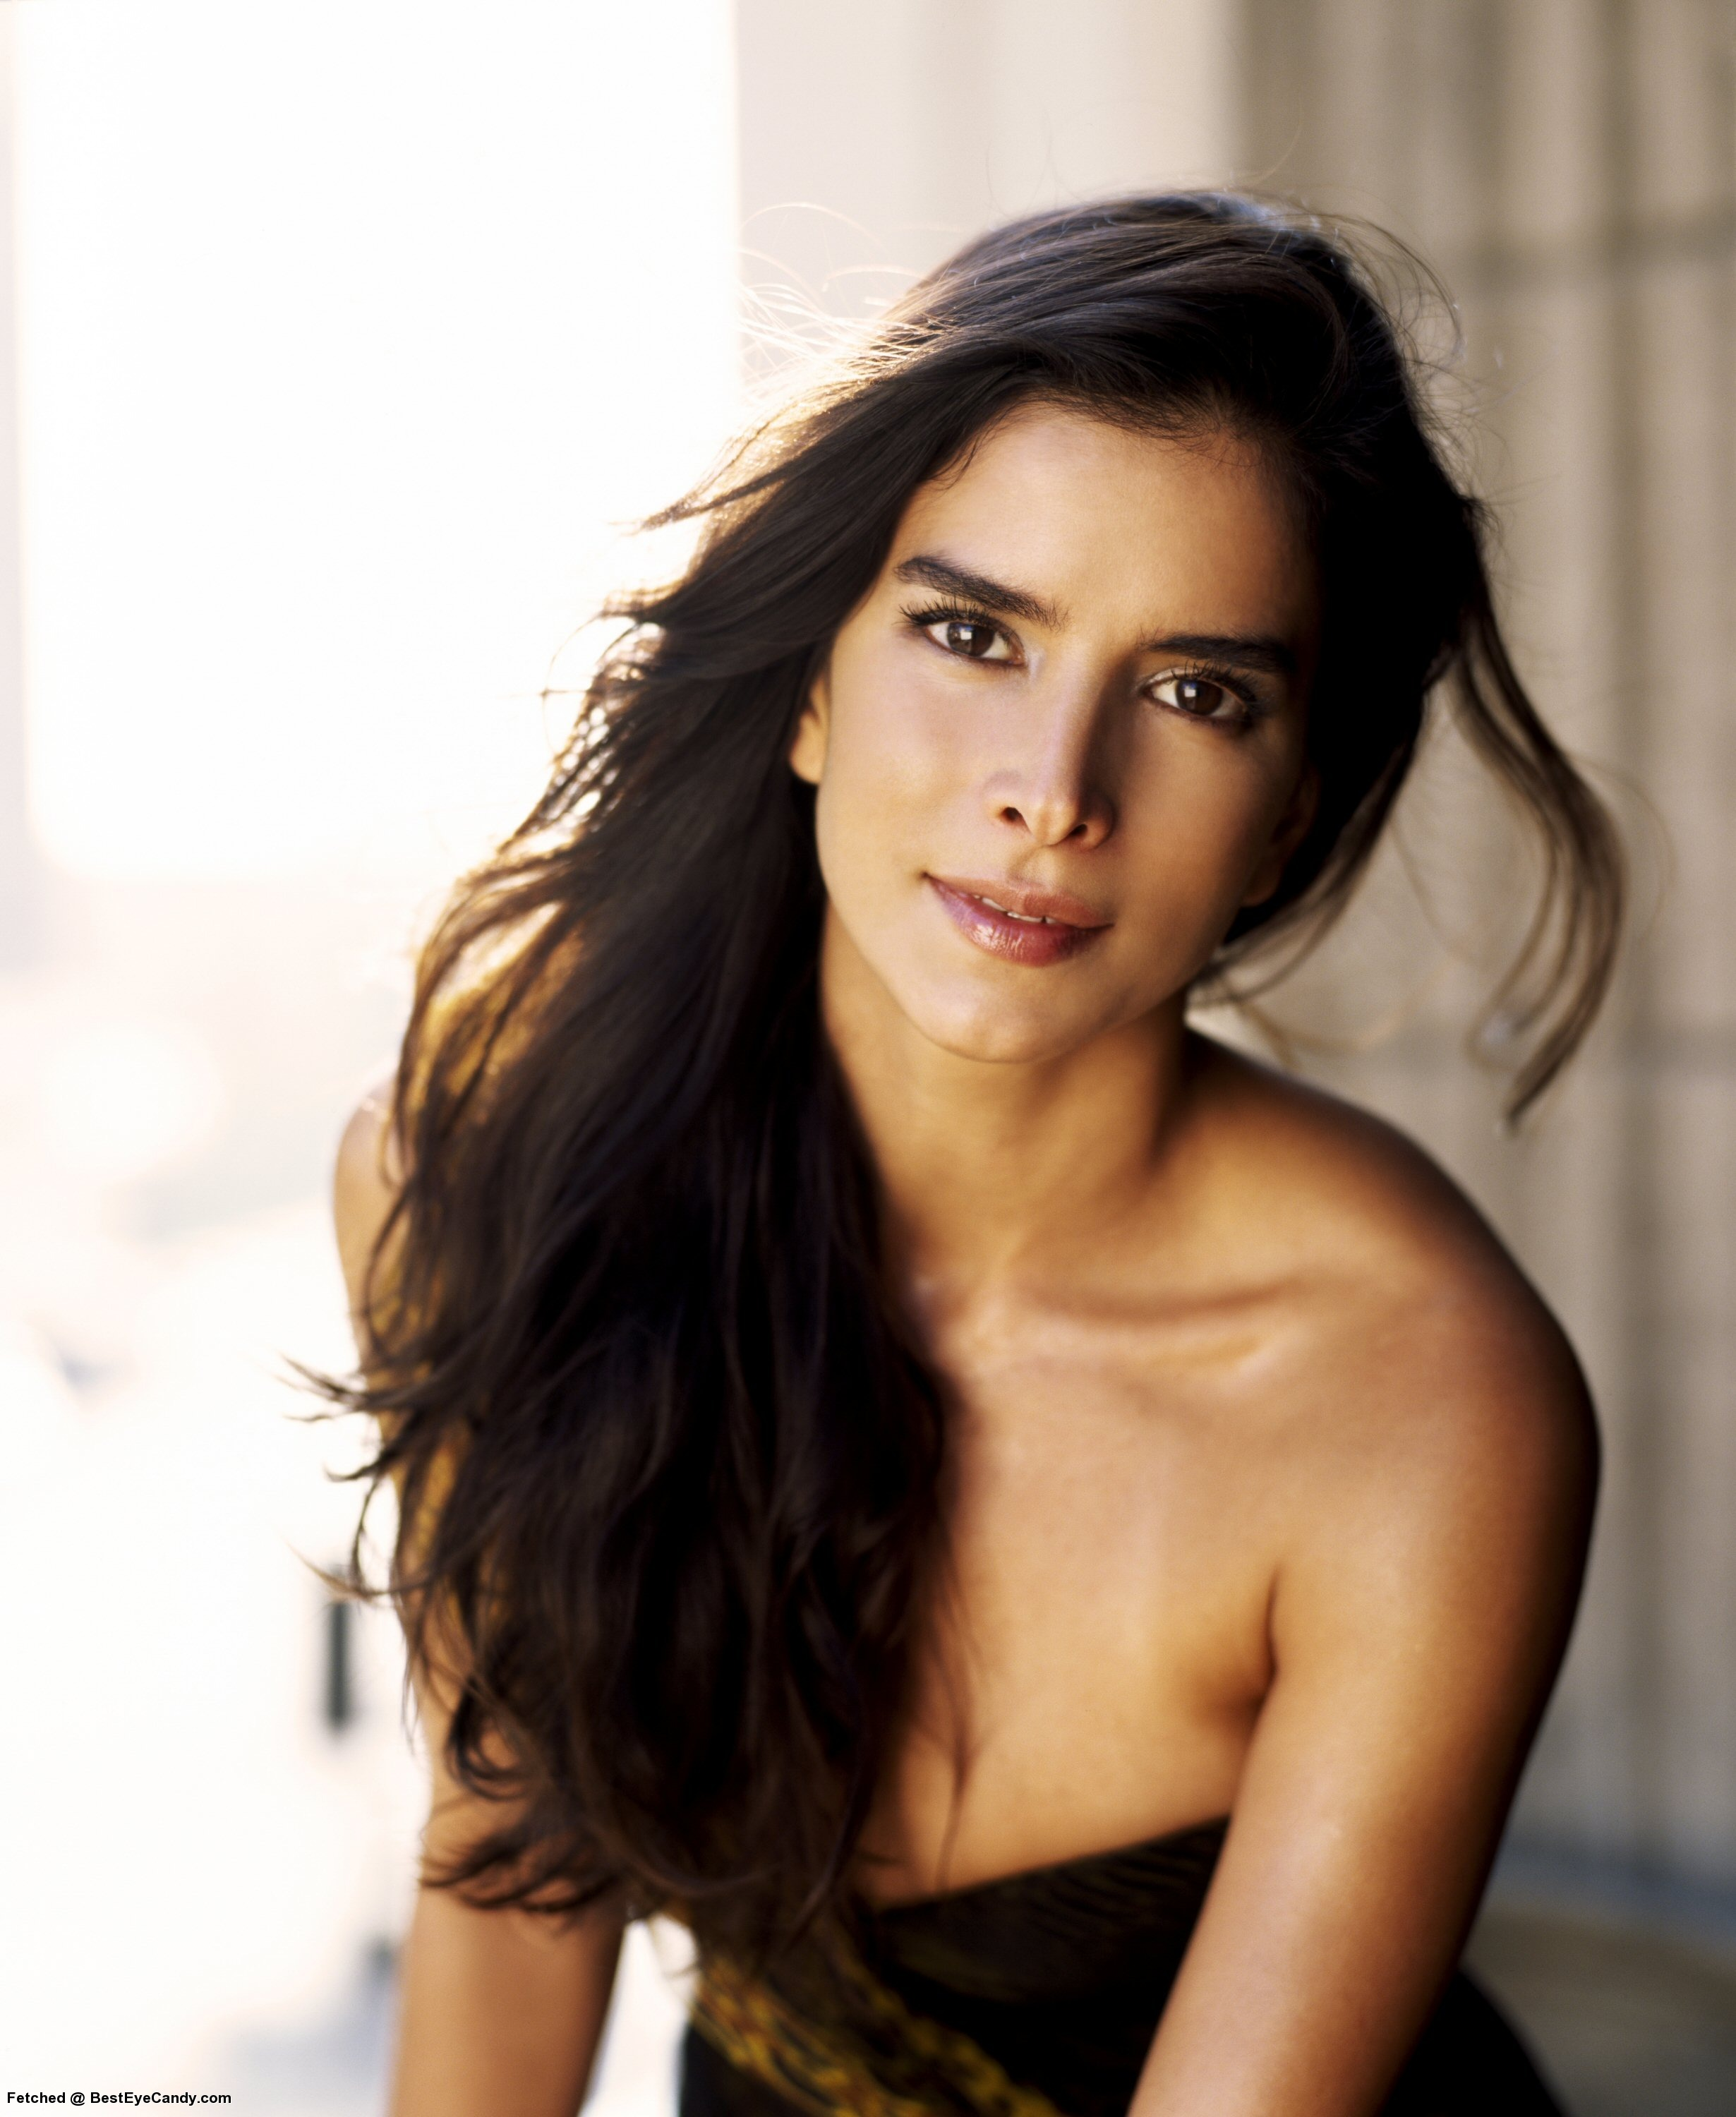 Images Patricia Velasquez naked (36 photo), Topless, Sideboobs, Twitter, swimsuit 2006